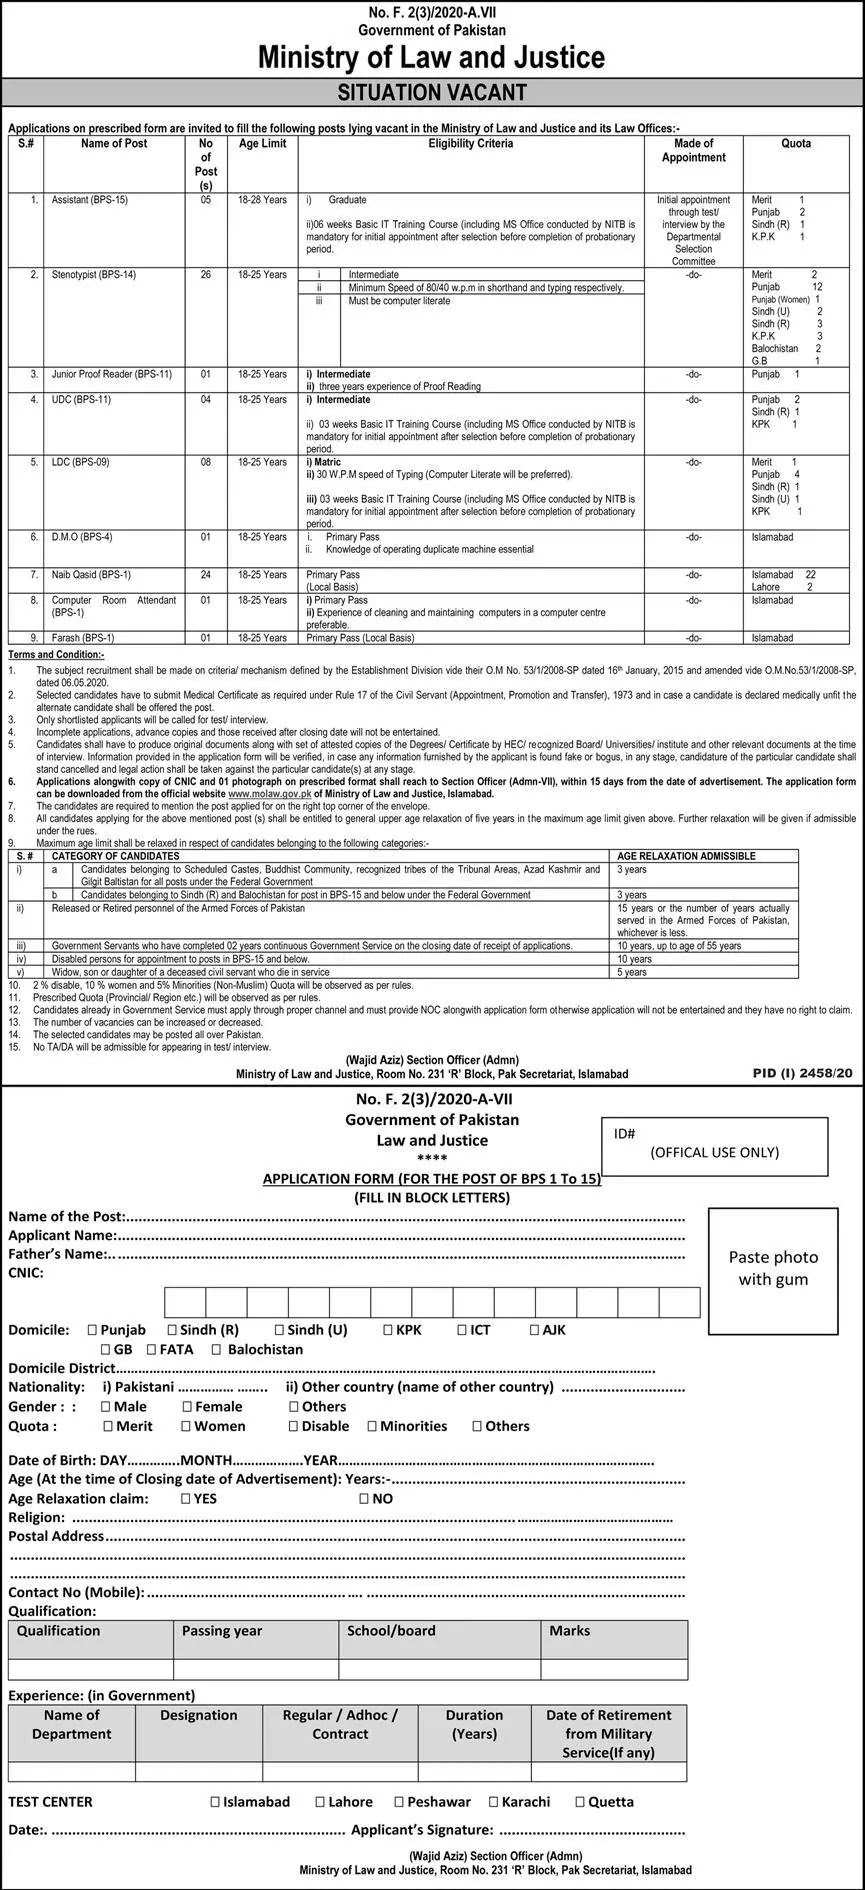 Ministry of Law and Justice Jobs 2020 in Pakistan